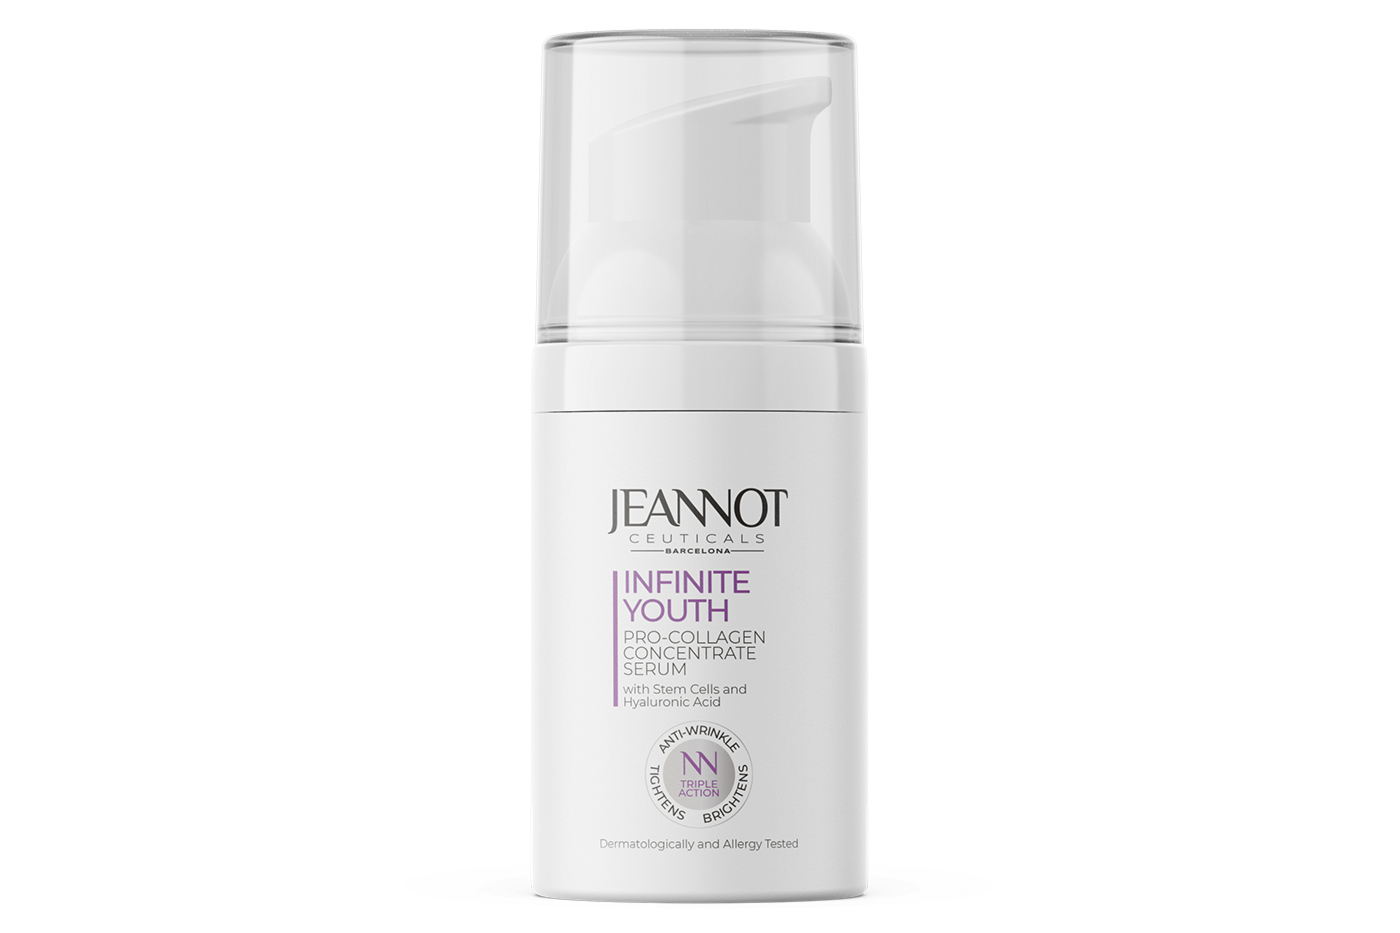 Right skincare with Jeannot Ceuticals